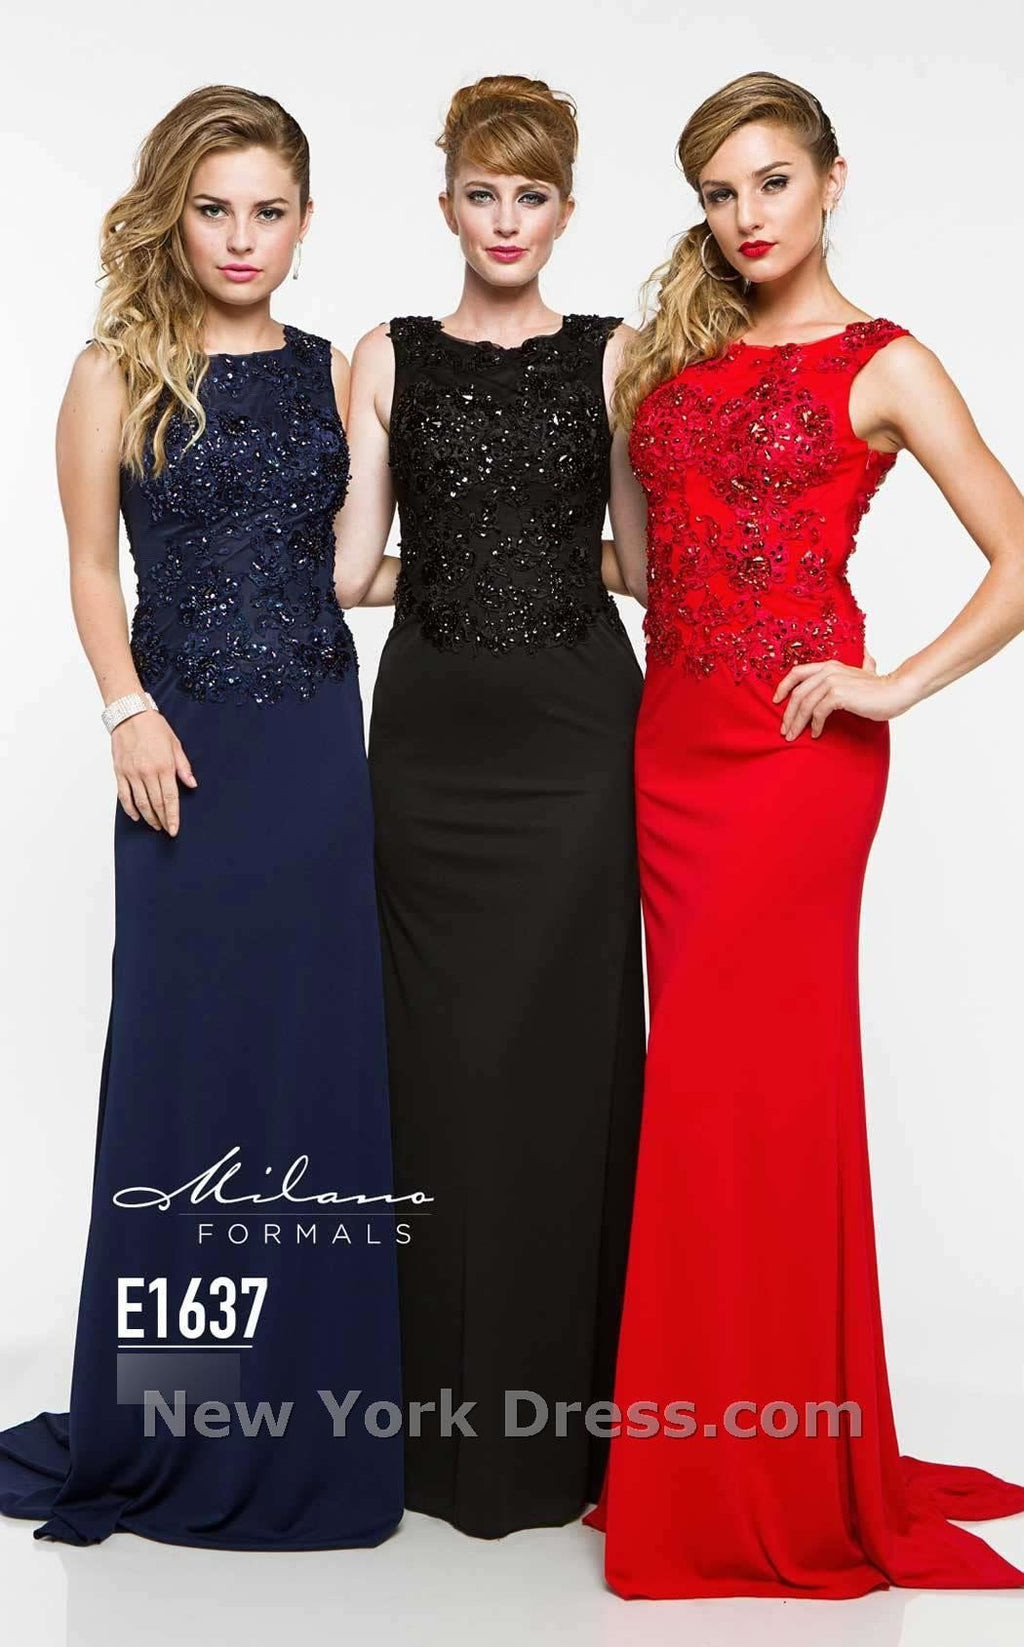 Milano Formals E1637 Dress